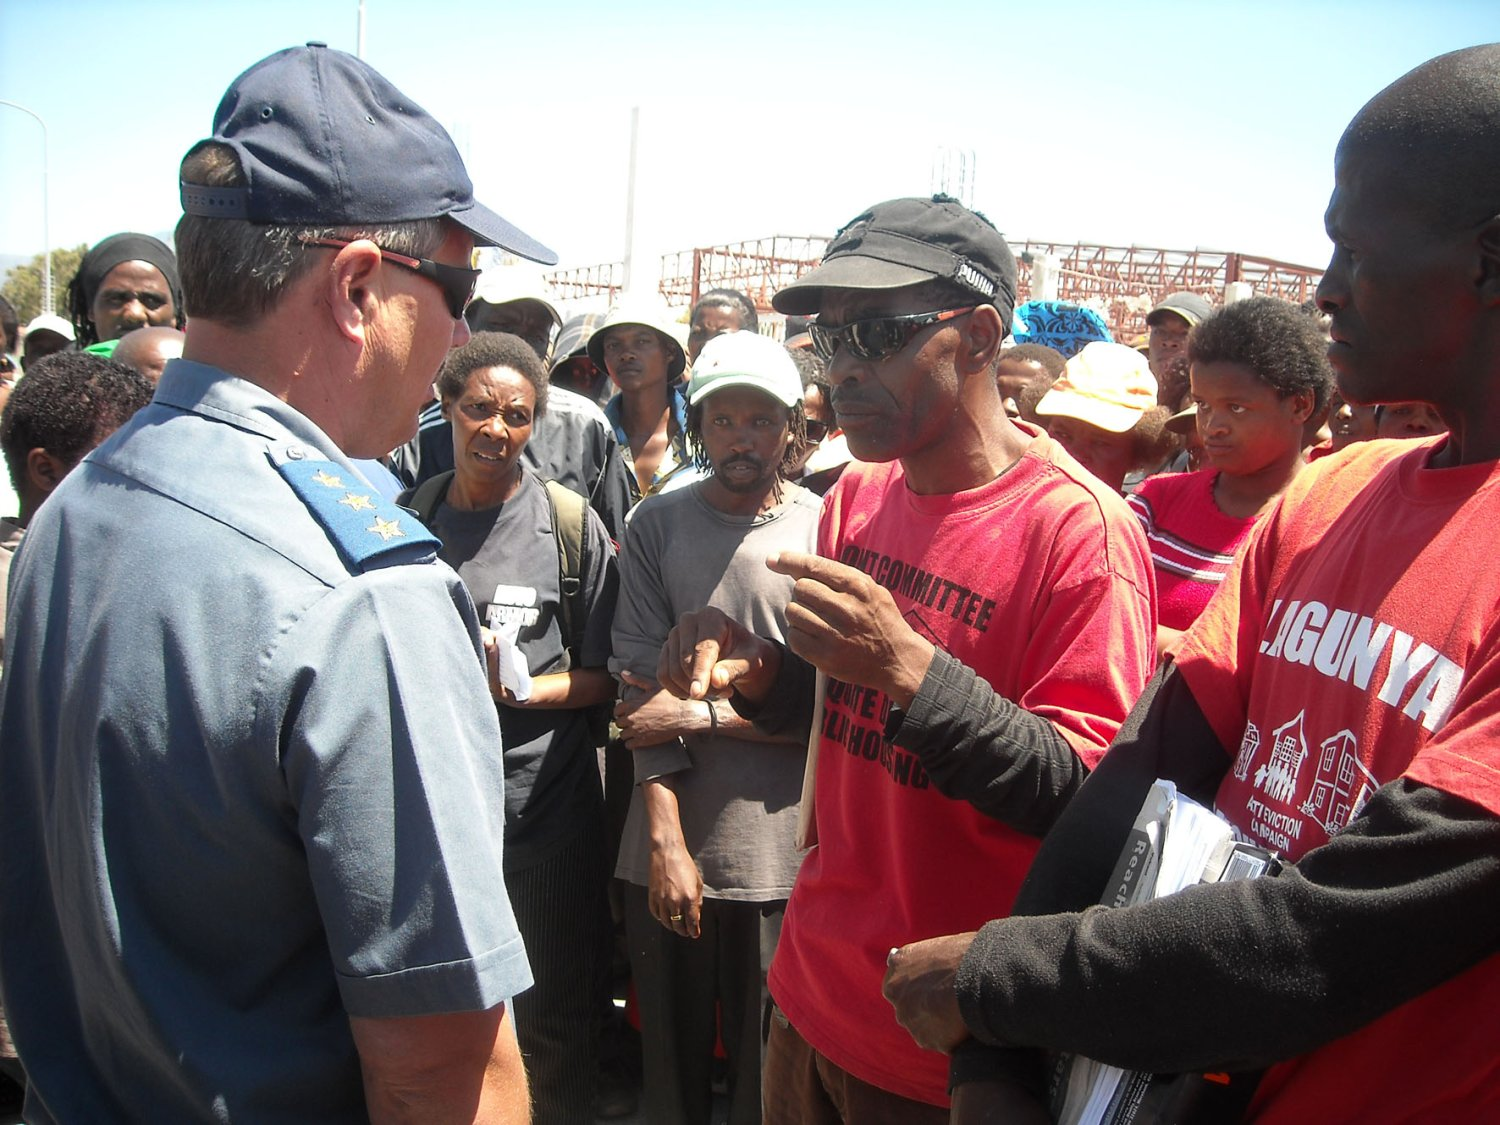 Leader of the Gugulethu Anti-Eviction Campaign, Mcendisi Thwala (centre) negotiates with a policeman who stopped over 2000 people from entering a construction site. The Anti-Eviction Campaign was demanded that jobs at the site be given to local residents. Photo: Peter Luhanga/WCN